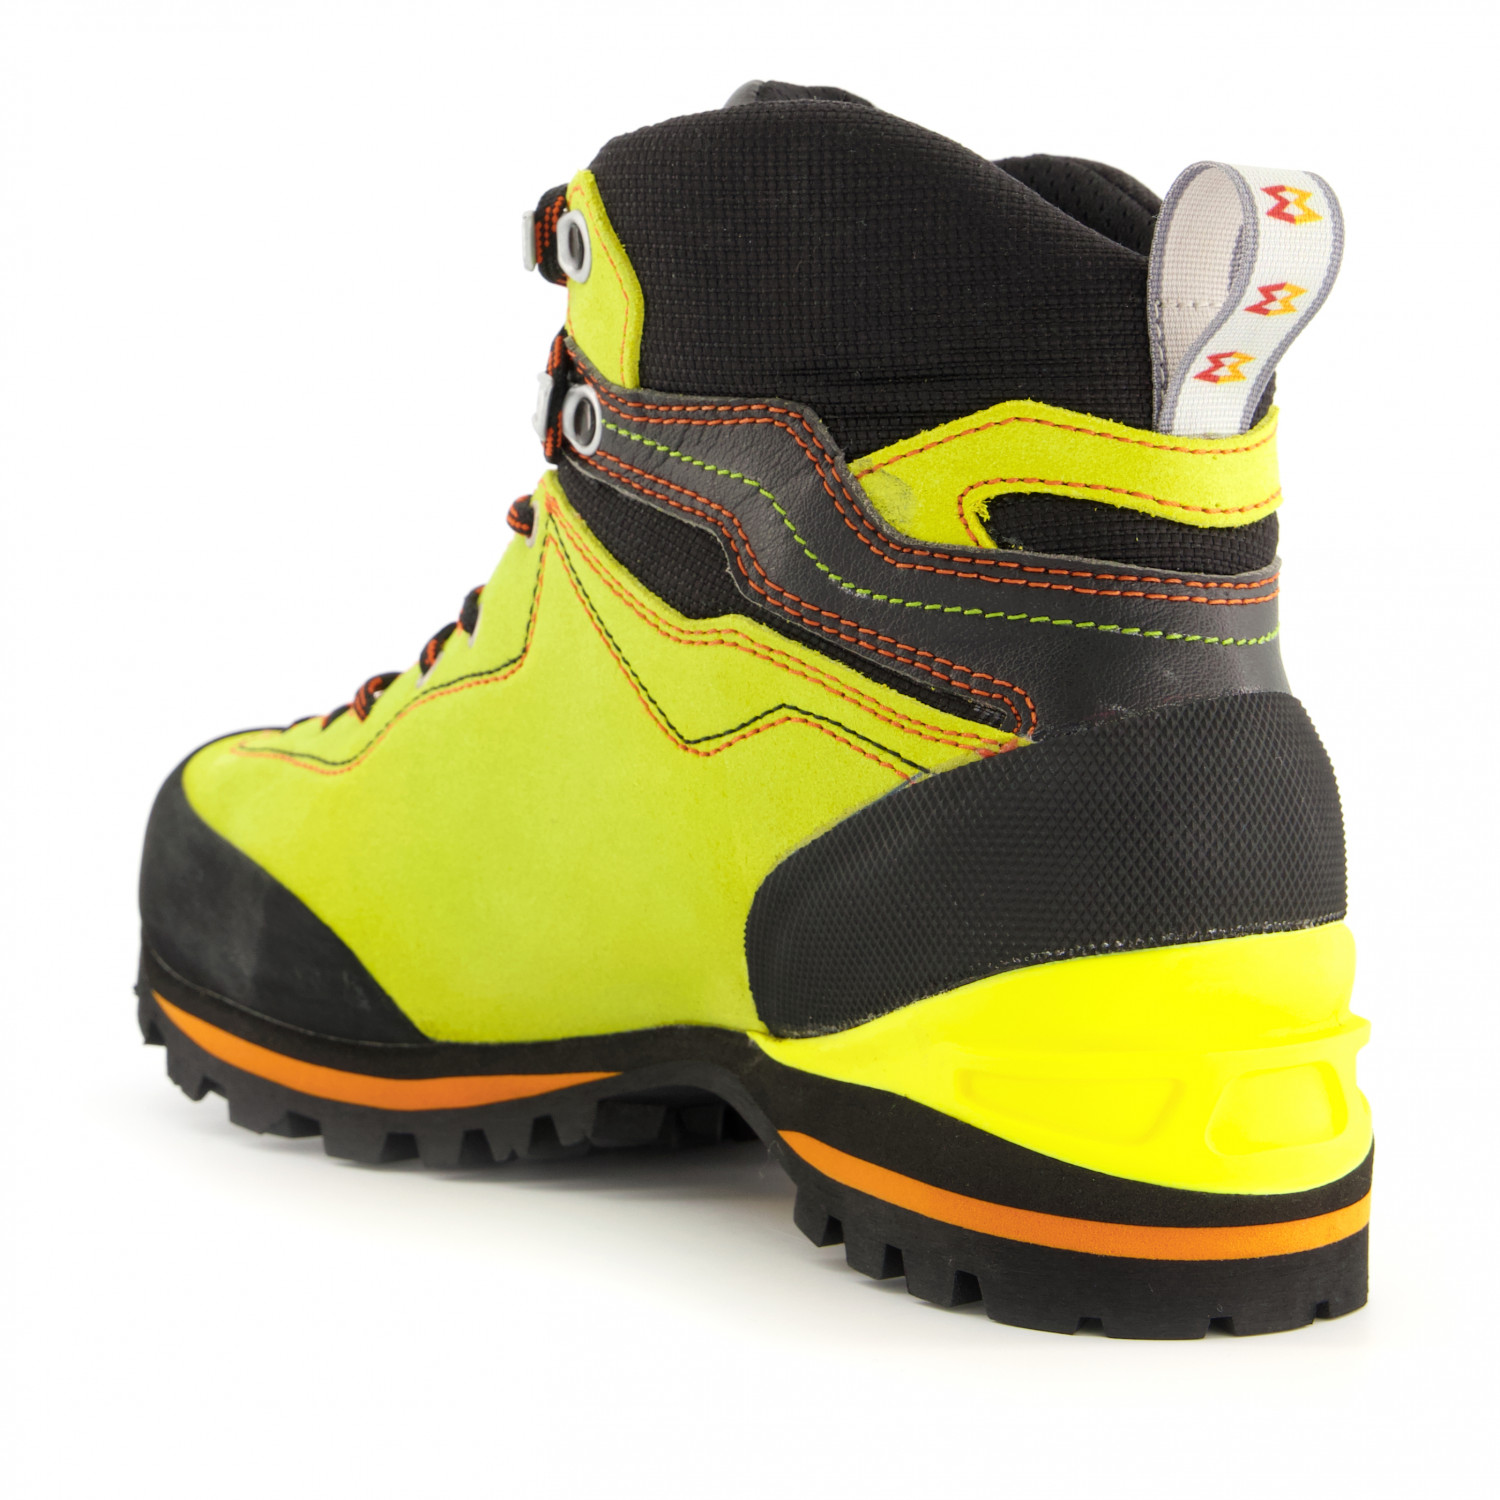 ... Garmont - Ascent GTX - Mountaineering boots ... 2f7511b0efd